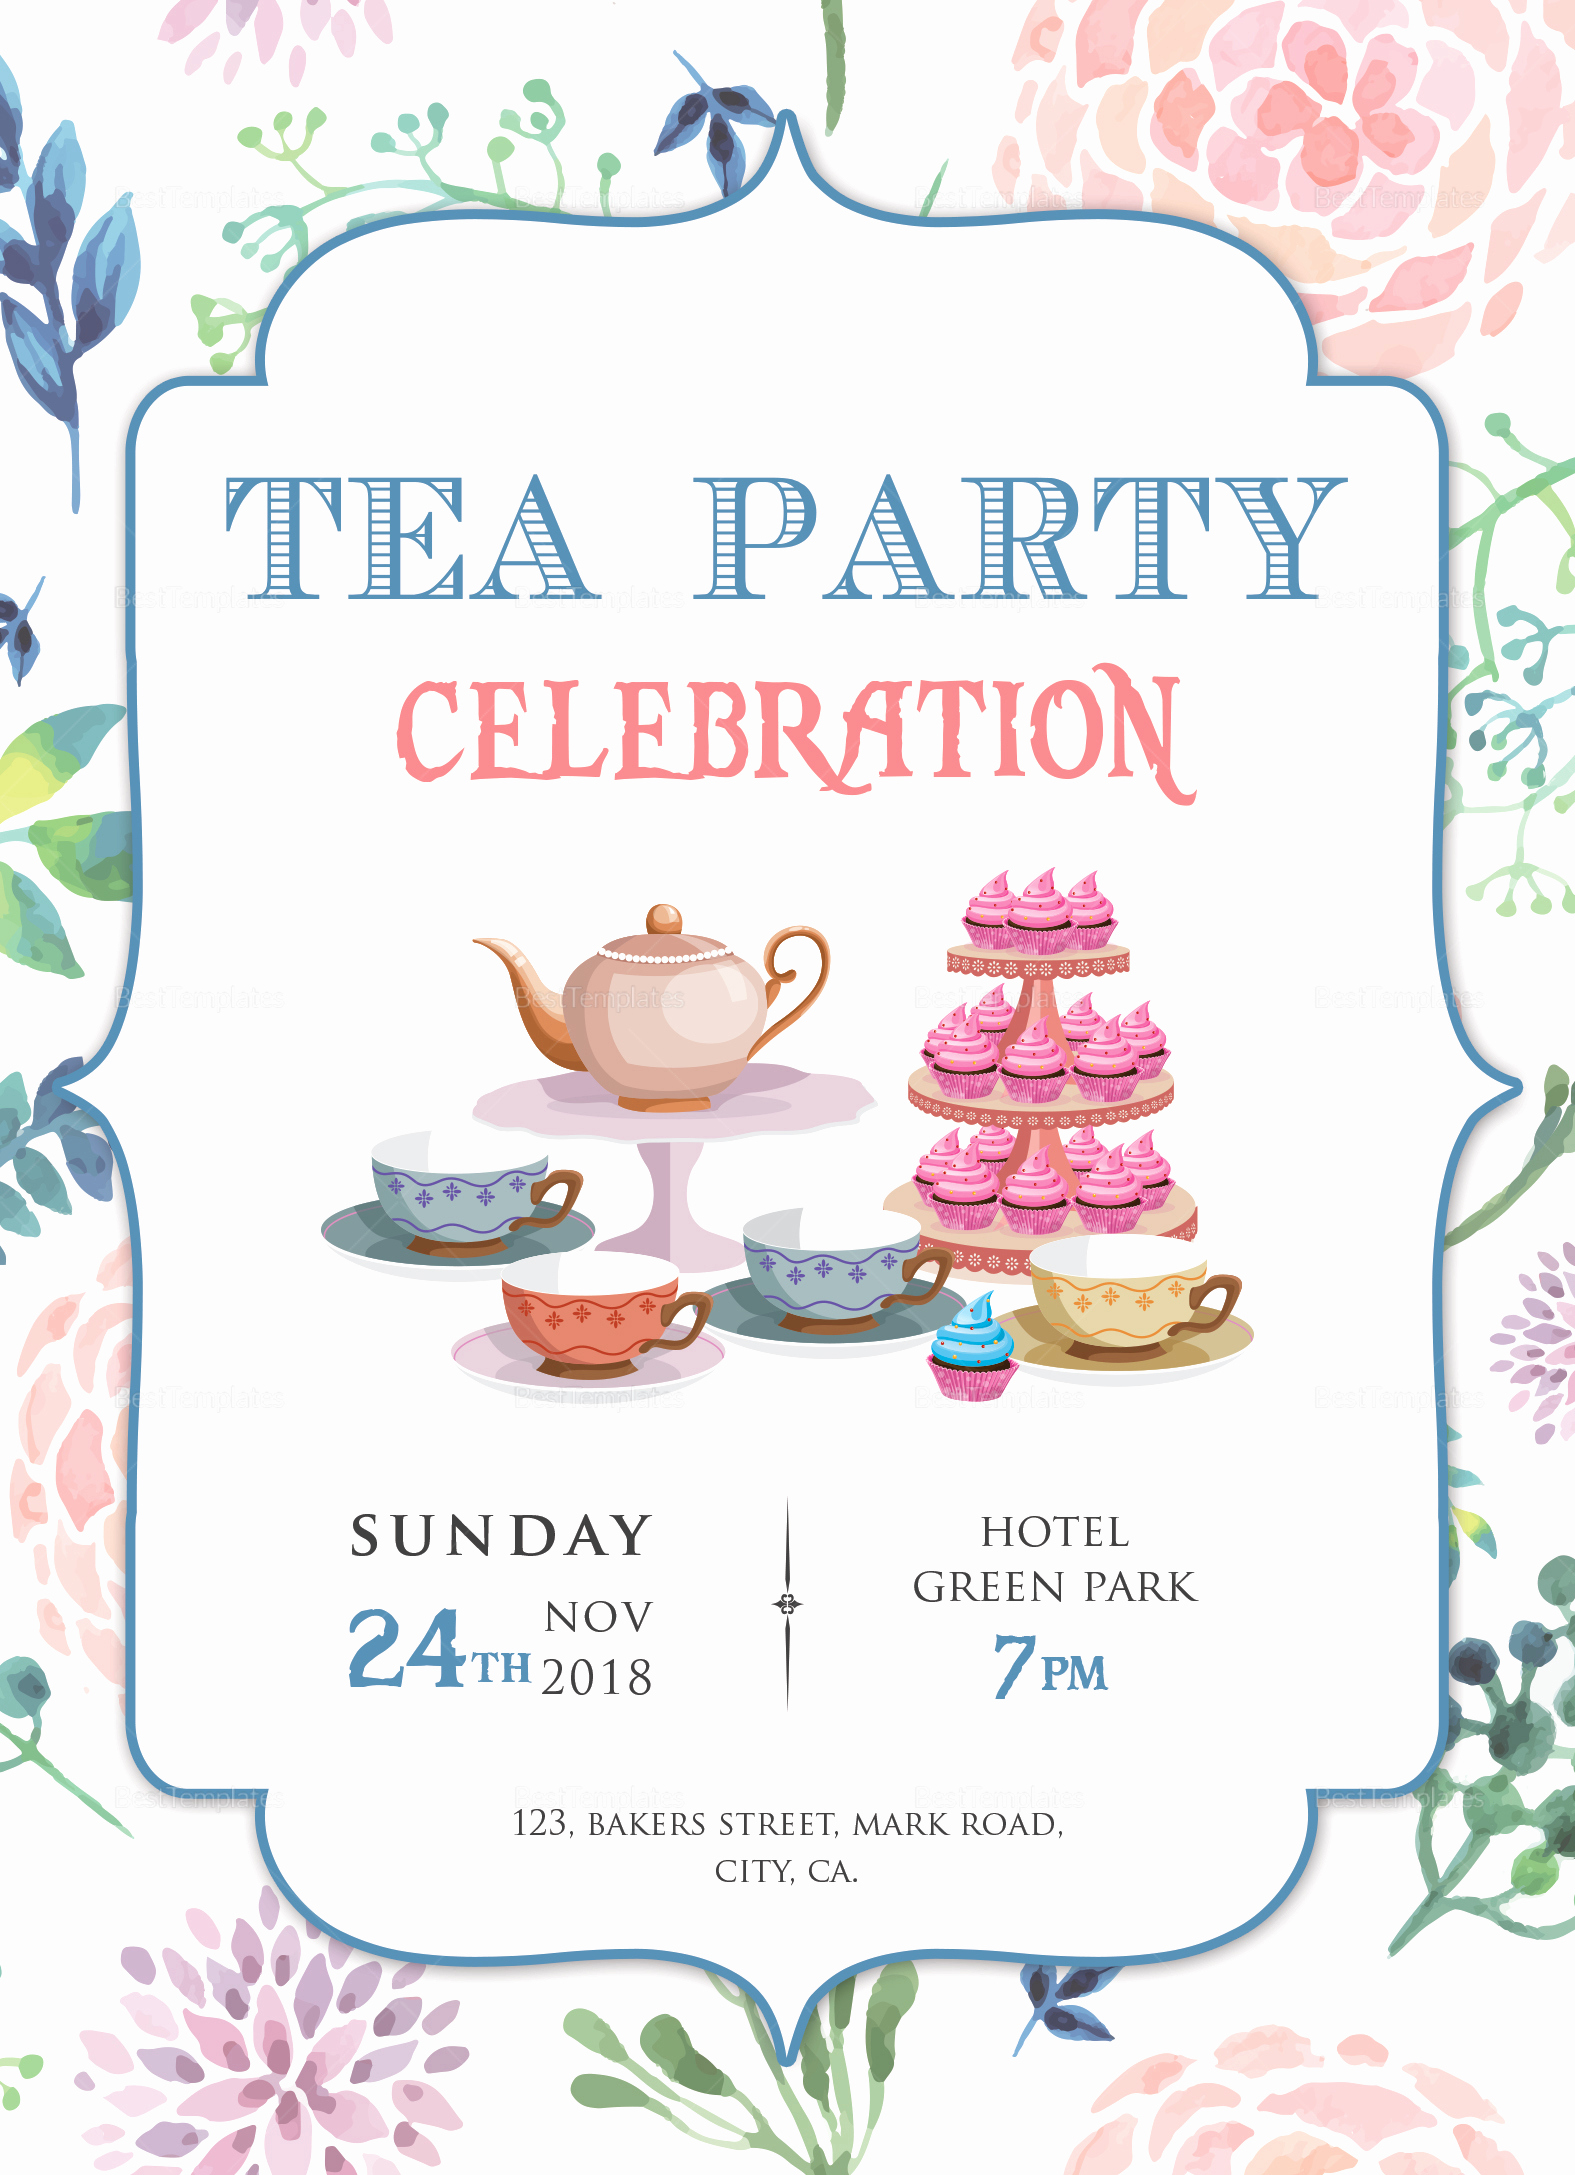 Tea Party Invitation Template Free Awesome Elegant Tea Party Invitation Design Template In Word Psd